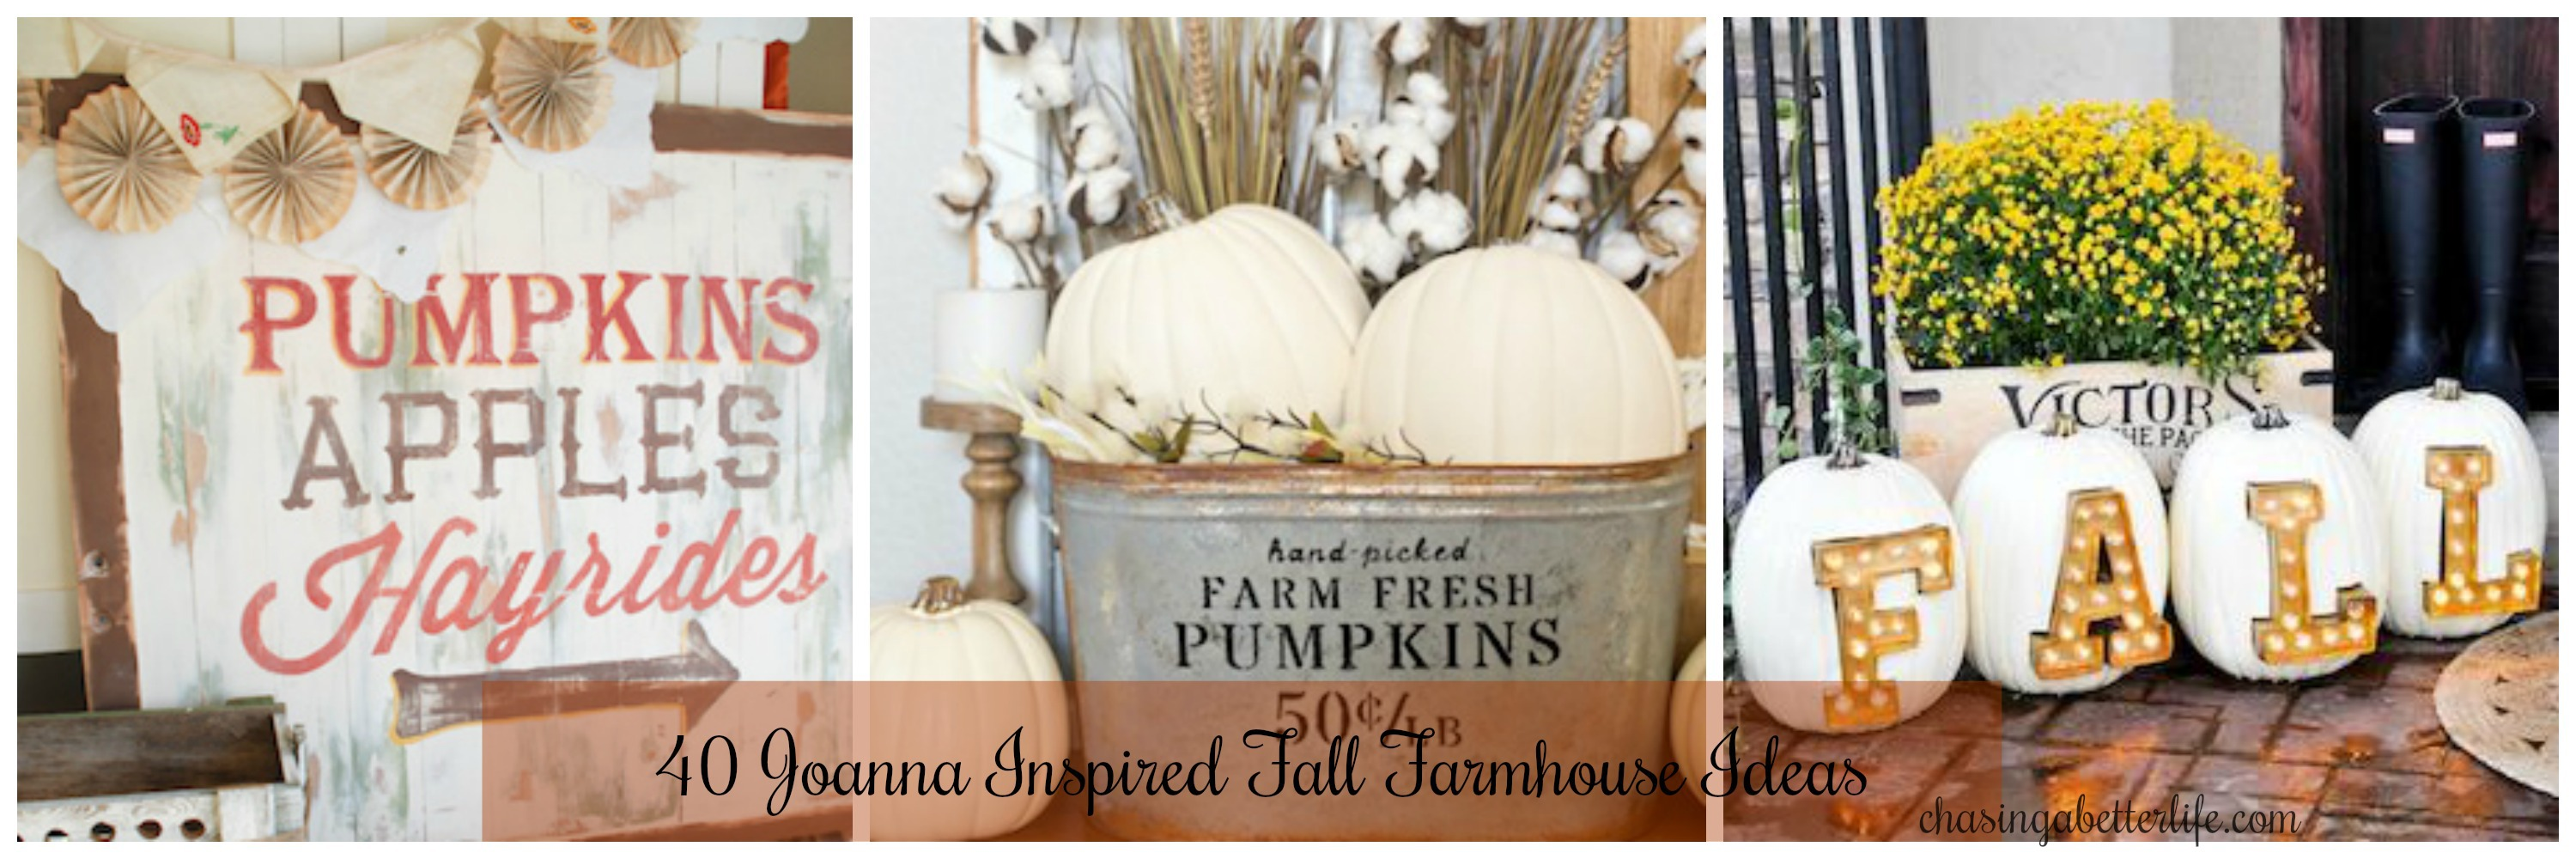 40 Joanna Inspired Fall Farmhouse Ideas